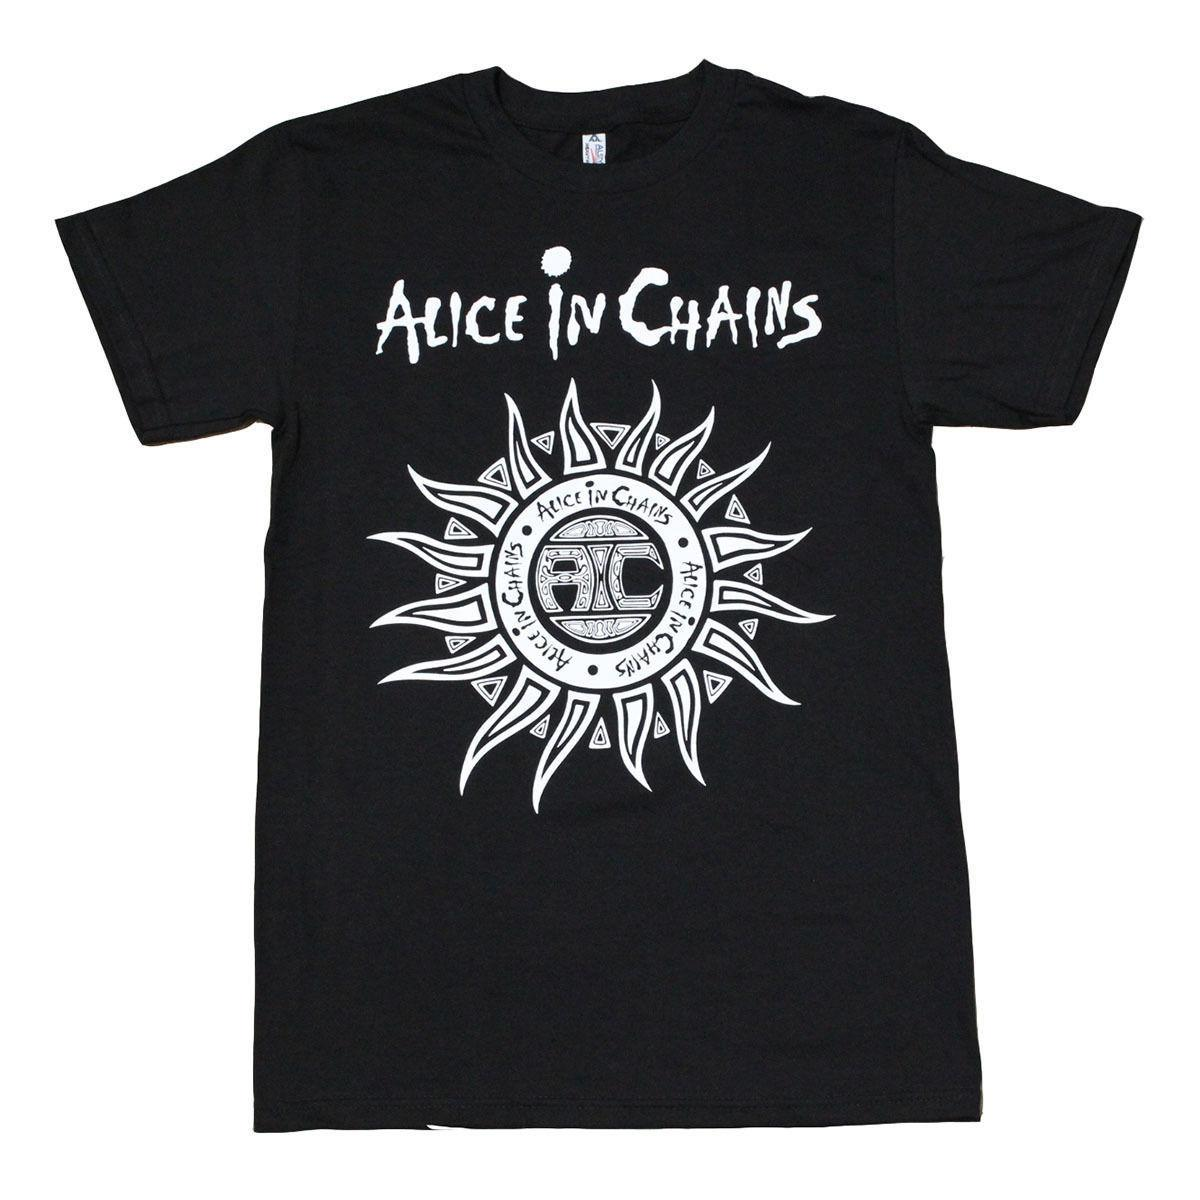 Alice in Chains Sun Logo Men's T-Shirt Black M 234XL XXL N539 T shirt O-Neck Summer Personality Fashion Men T-Shirts